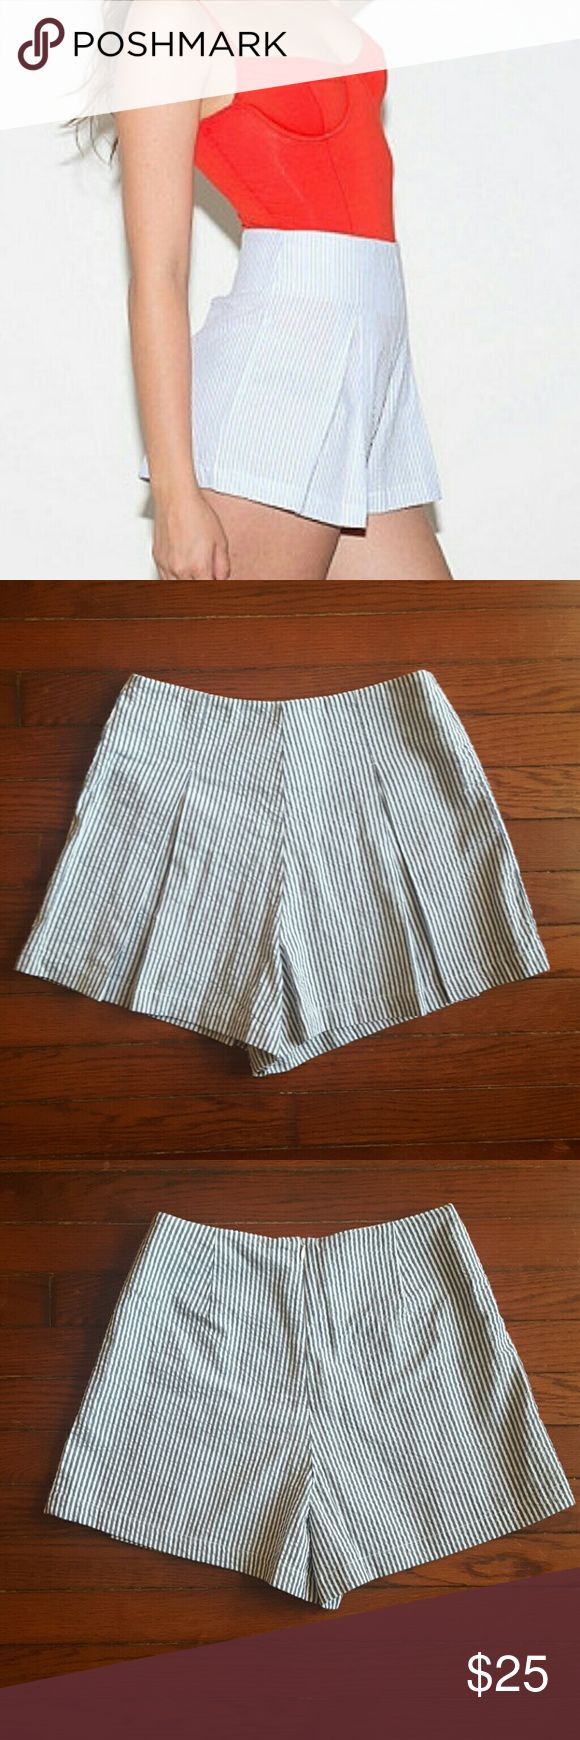 NWOT American Apparel Seersucker High Waist Shorts New without tags! These have never been worn. I got them from the American Apparel factory in Los Angeles so they don't have tags. High-waist American Apparel seersucker shorts. Blue and white pintripes. Zips up in the back. American Apparel Shorts